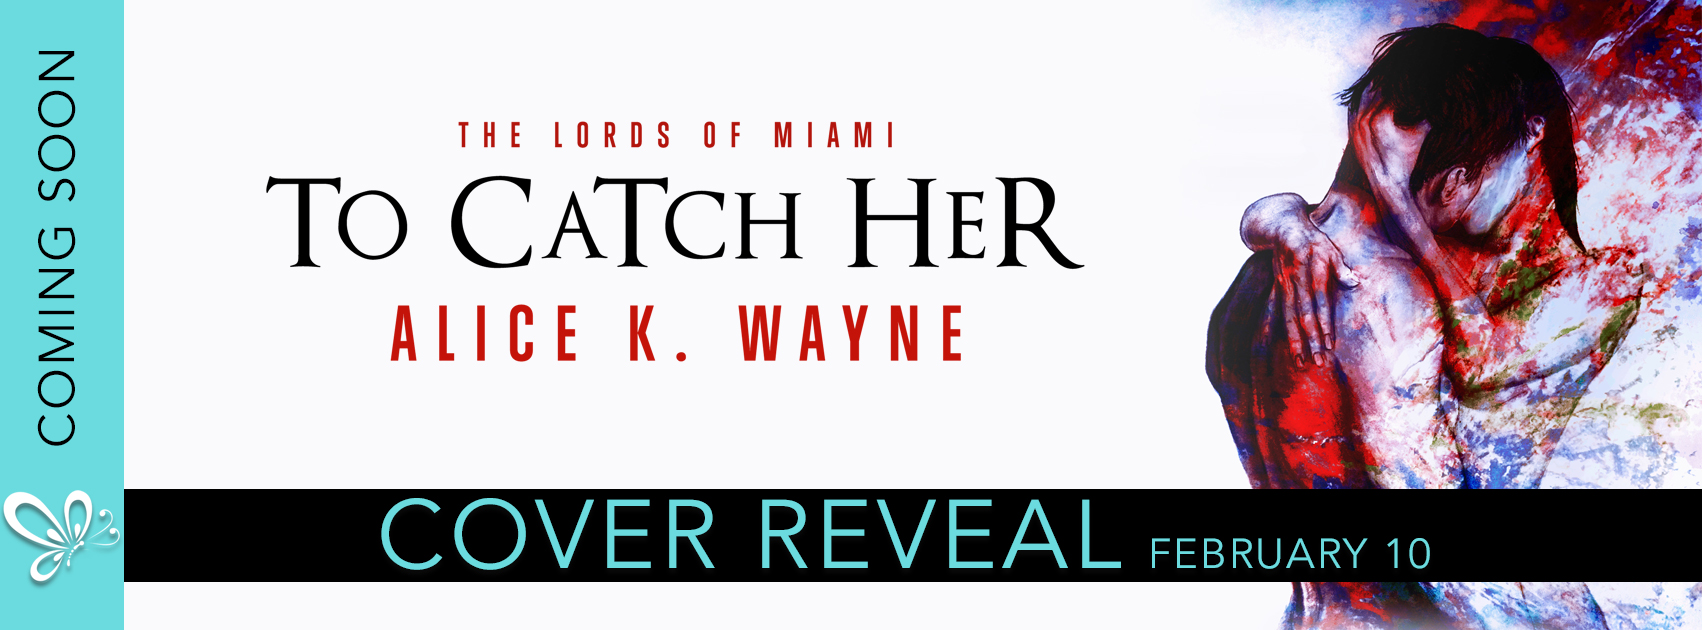 Cover Reveal: The Lords of Miami: To Catch Her By Alice K. Wayne